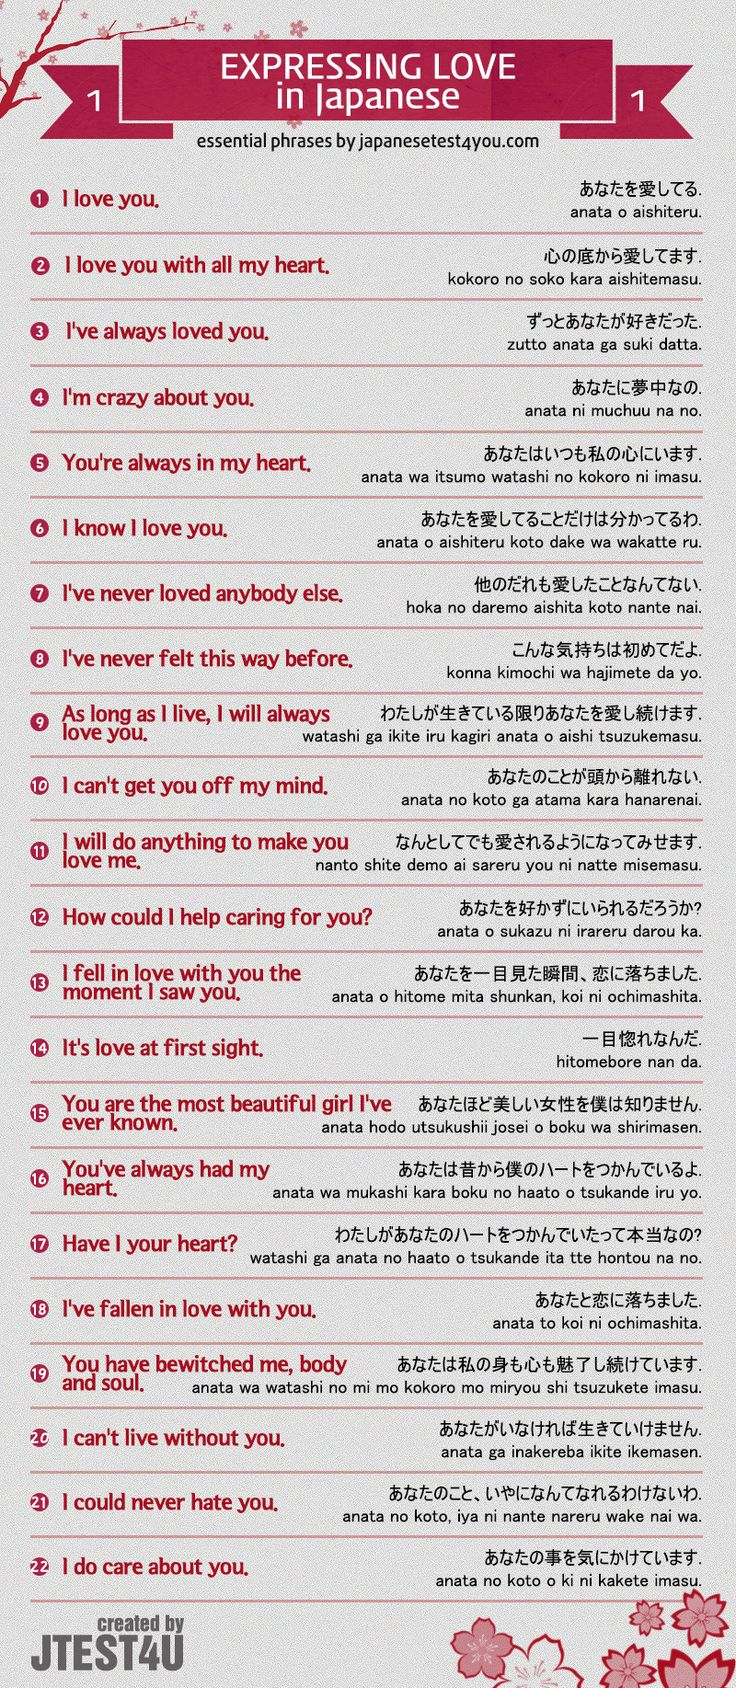 How to express your love in Japanese part 1. http://japanesetest4you.com/infographic-how-to-express-your-love-in-japanese-part-1/